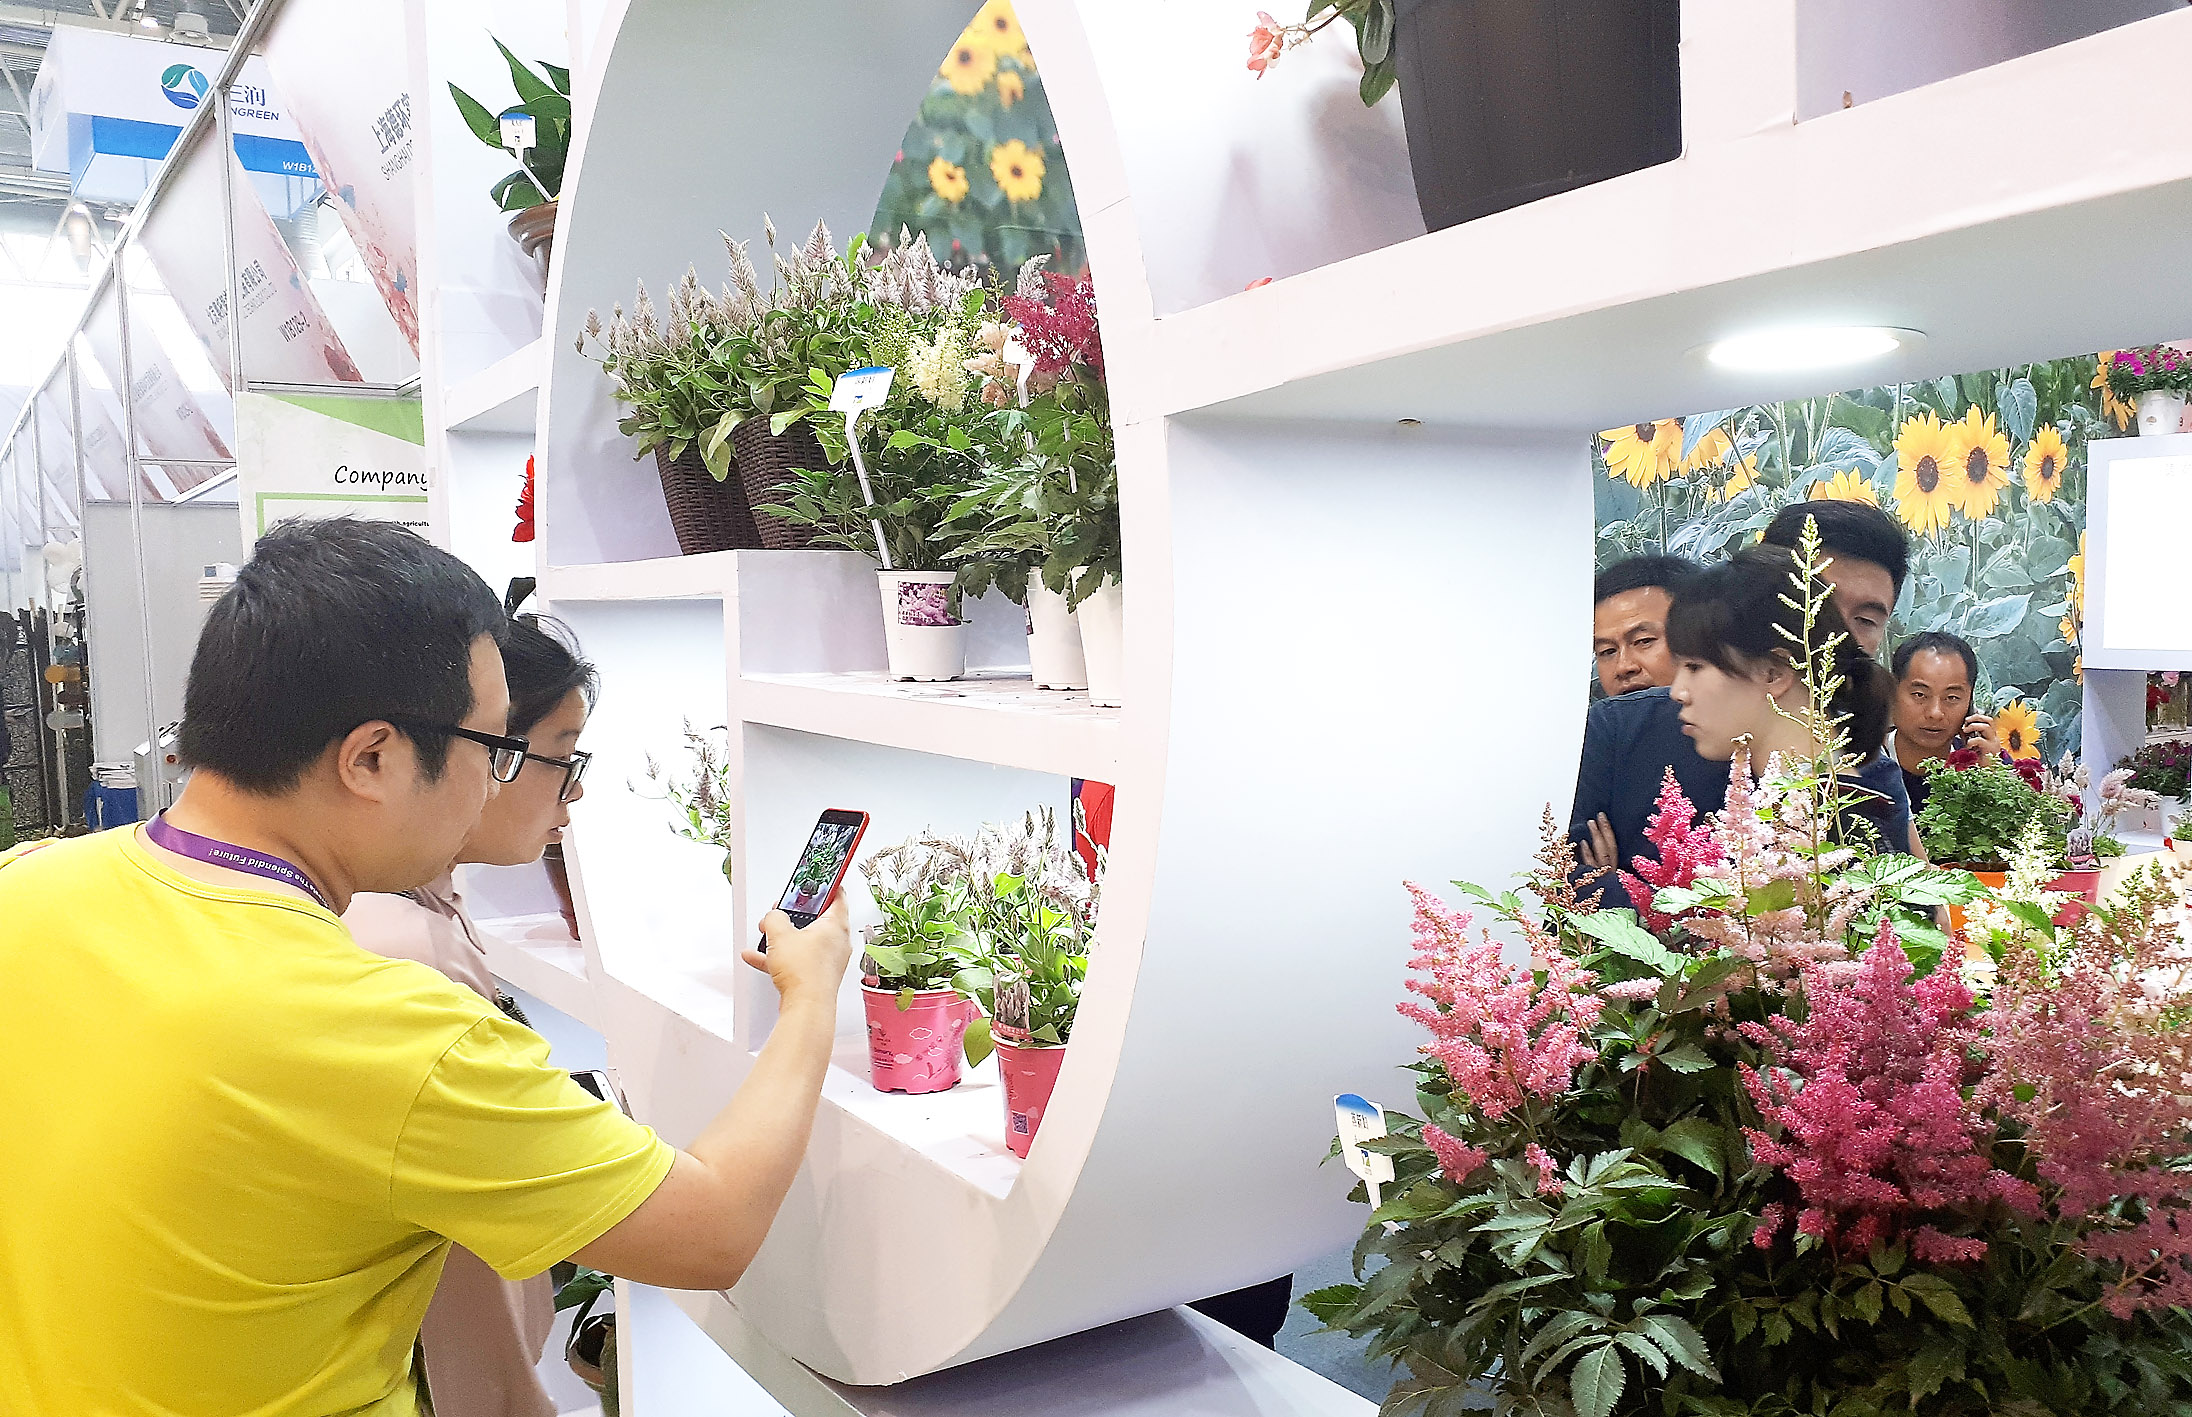 Hortiflorexpo IPM Beijing 2018 Registers Substantial Pluses with Regard to the Area, the Exhibitors and the Visitors